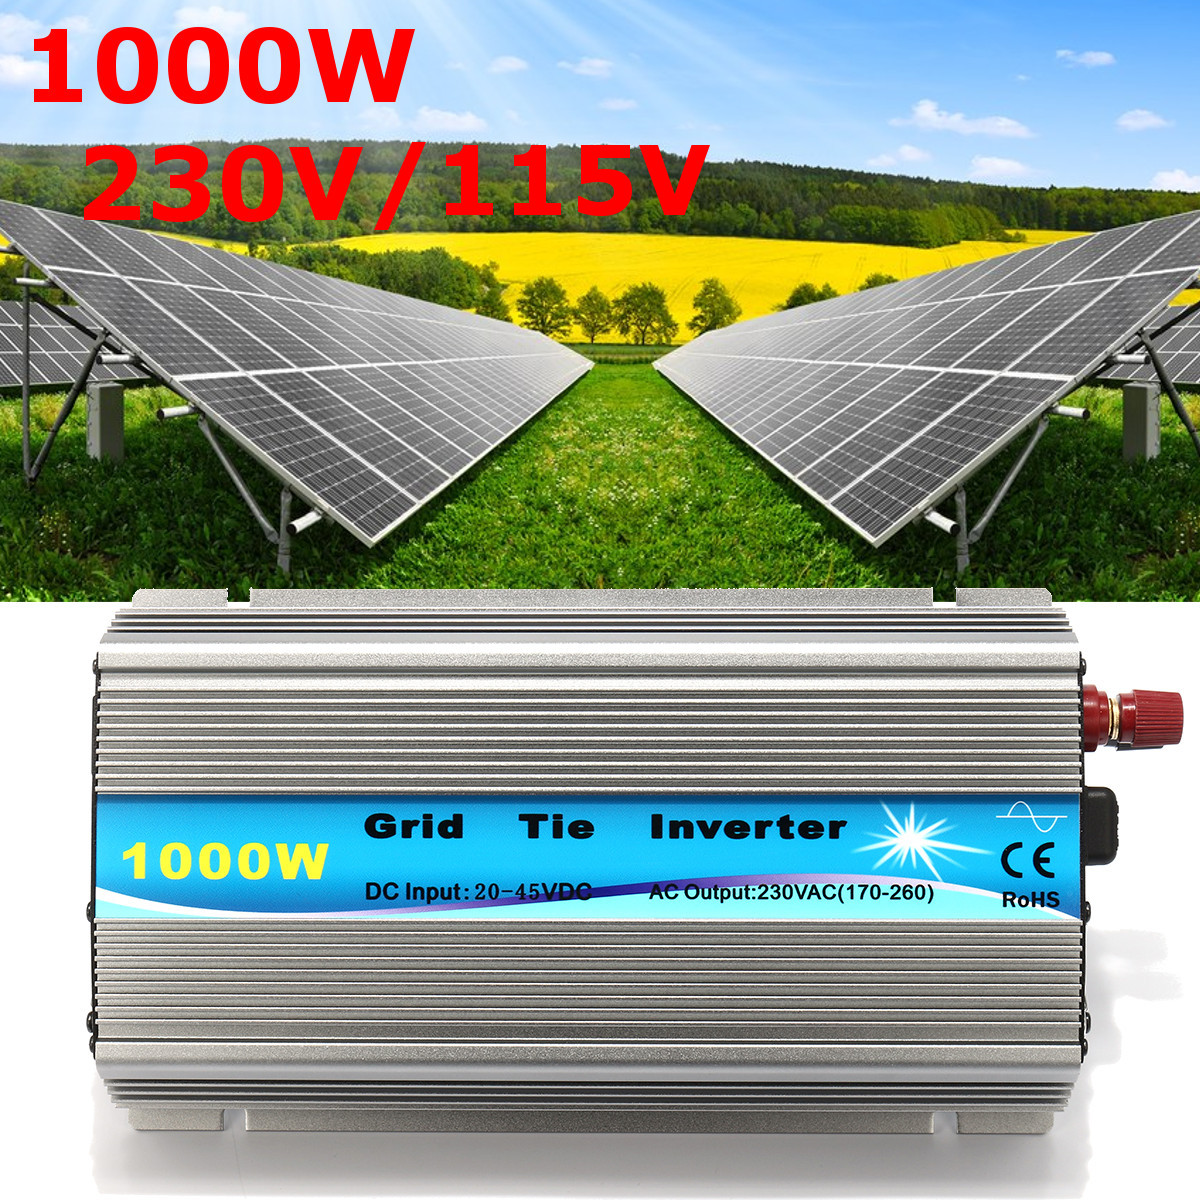 1000W Grid Tie Inverter 115V/230V MPPT Pure Sine Wave Inverter 50Hz/60Hz